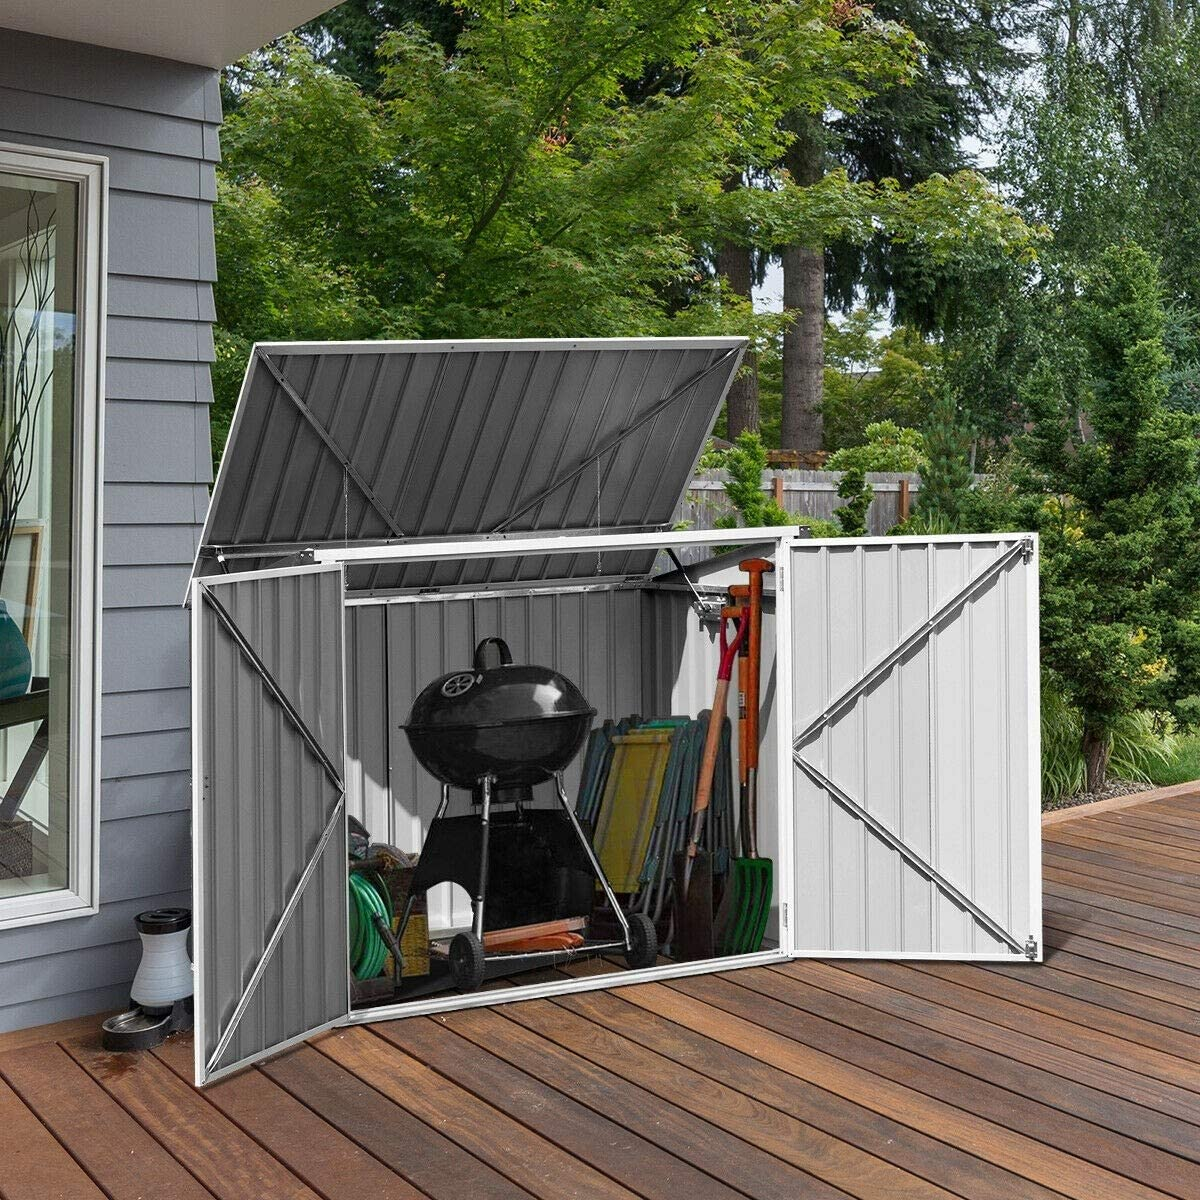 Bestdeal.shop Horizontal Storage Shed 68 Cubic Feet for Garbage Cans Galvanized Sheet Black for Backyard Garden Crafts, Pool Supplies, and Other Items.